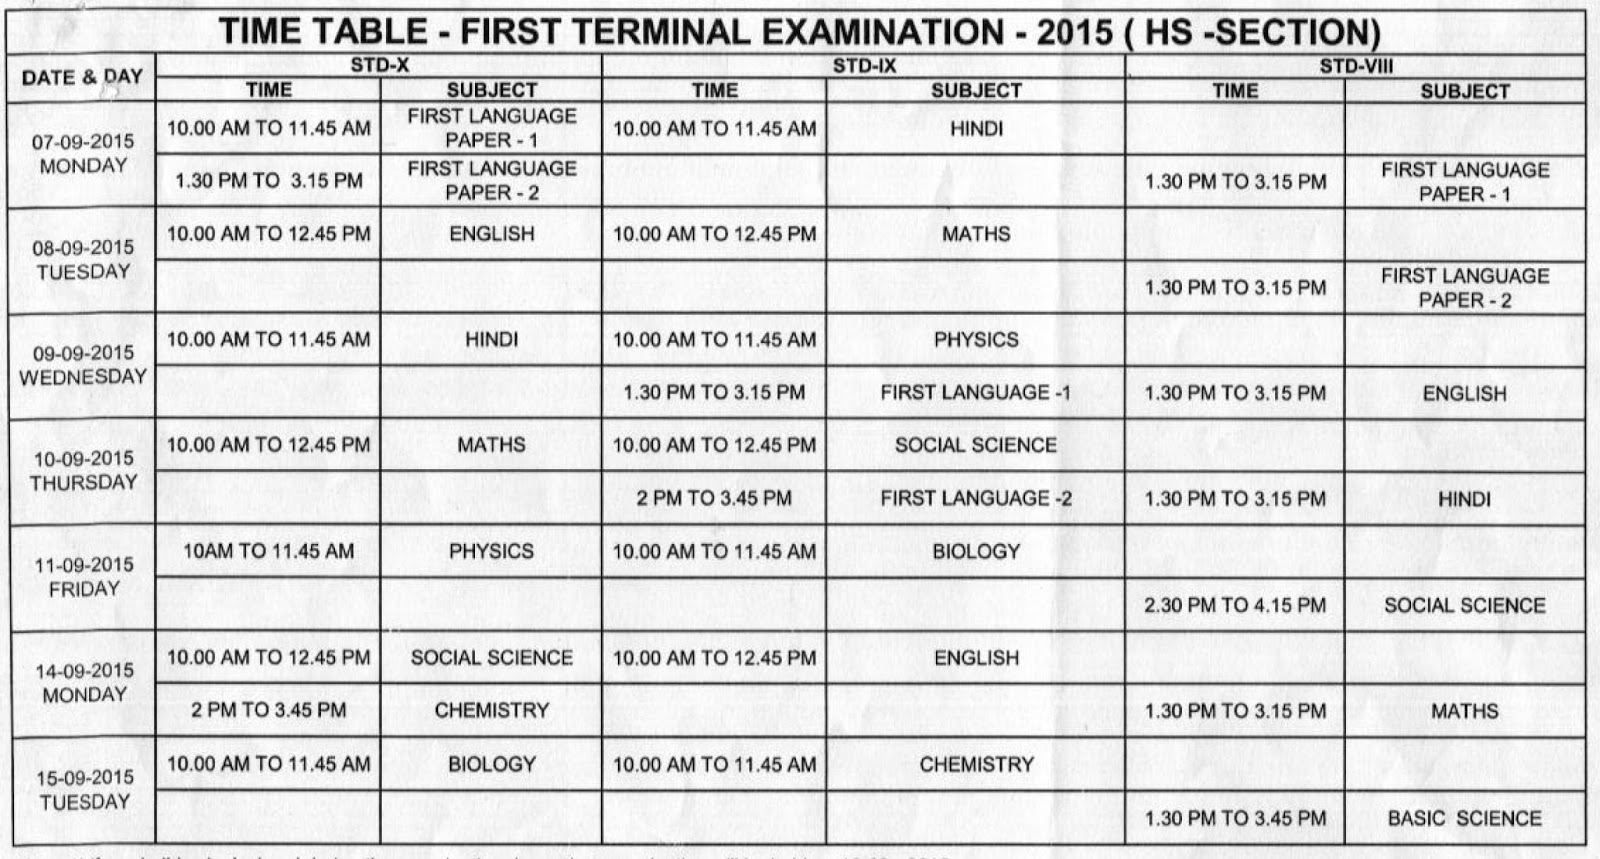 isc std 12 timetable 2013 10th 12th date sheet 2018, all board exam time table 2018, download ssc/hsc time table, intermediate date sheet, sslc routine board time table pdf download.